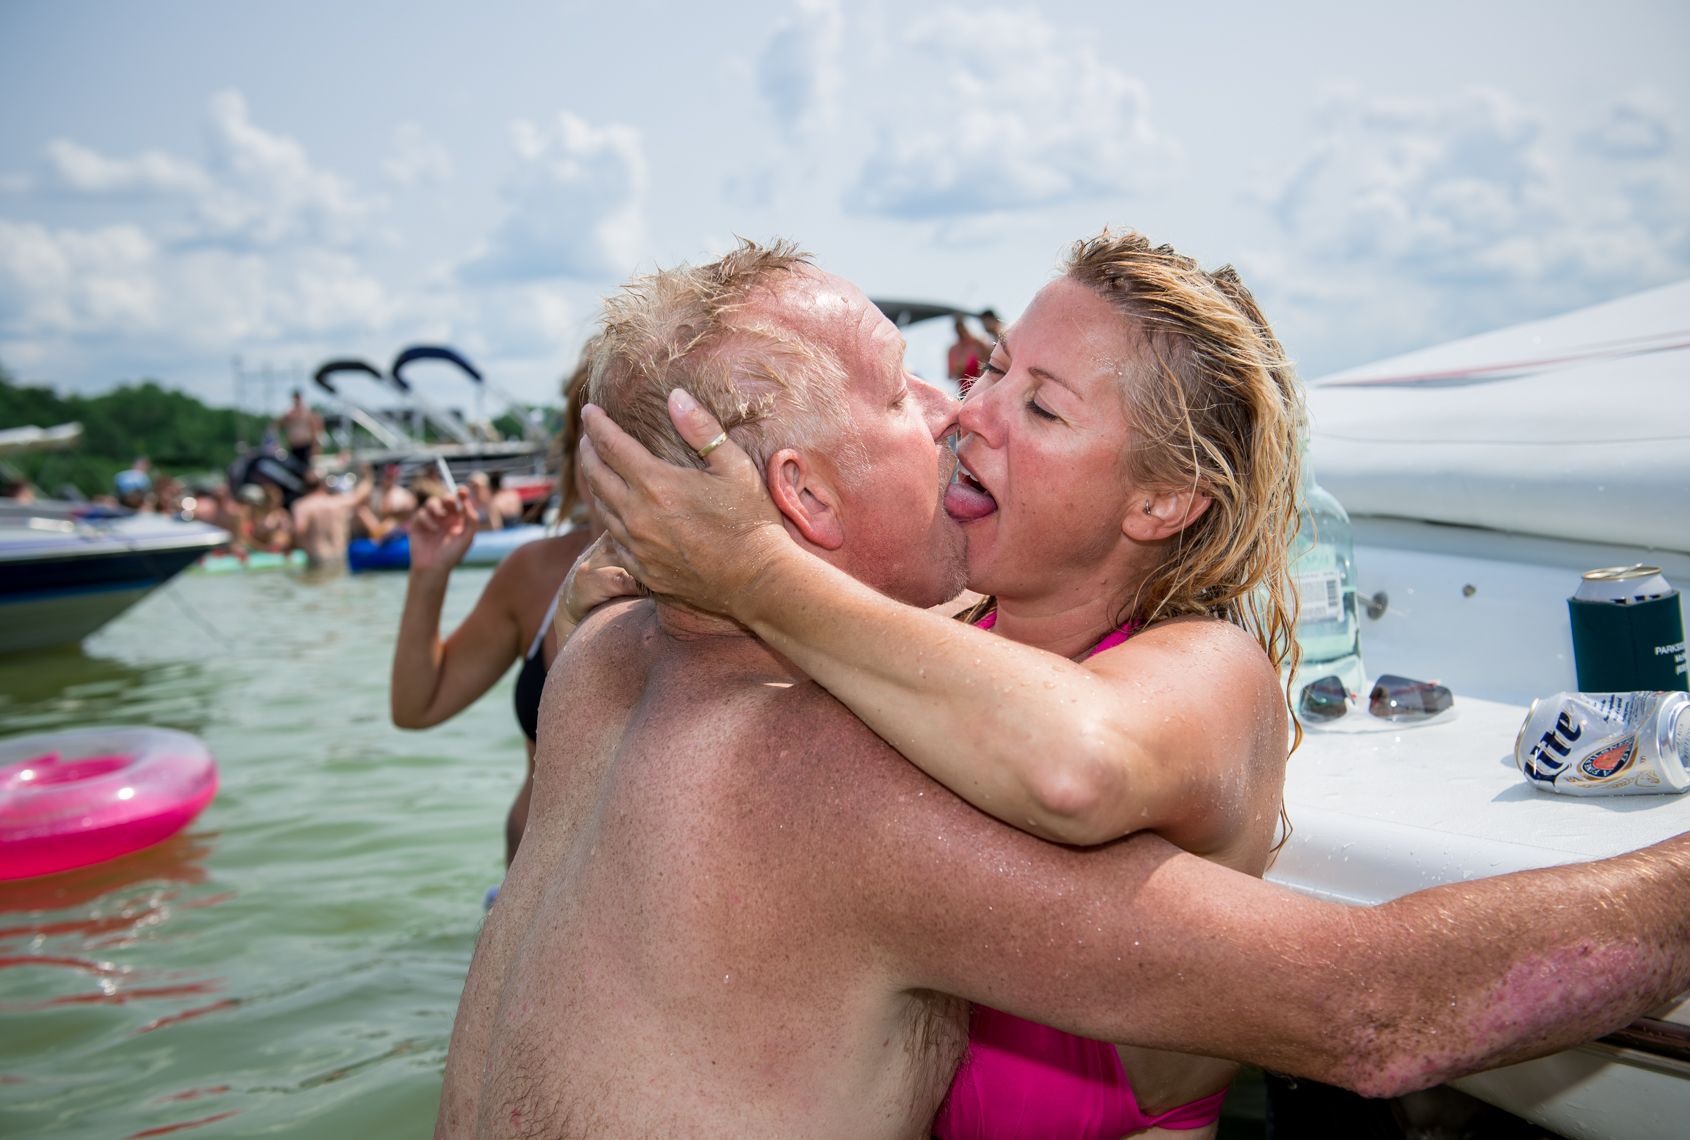 Sun burned couple making out, quirky, sex, kissing, couple, real people, lake party, summer, beverage, swimming, swim, suit, bathing, confident, summer fun, liquor, travel, Madison, Chicago, Nashville advertising, beverage, lifestyle